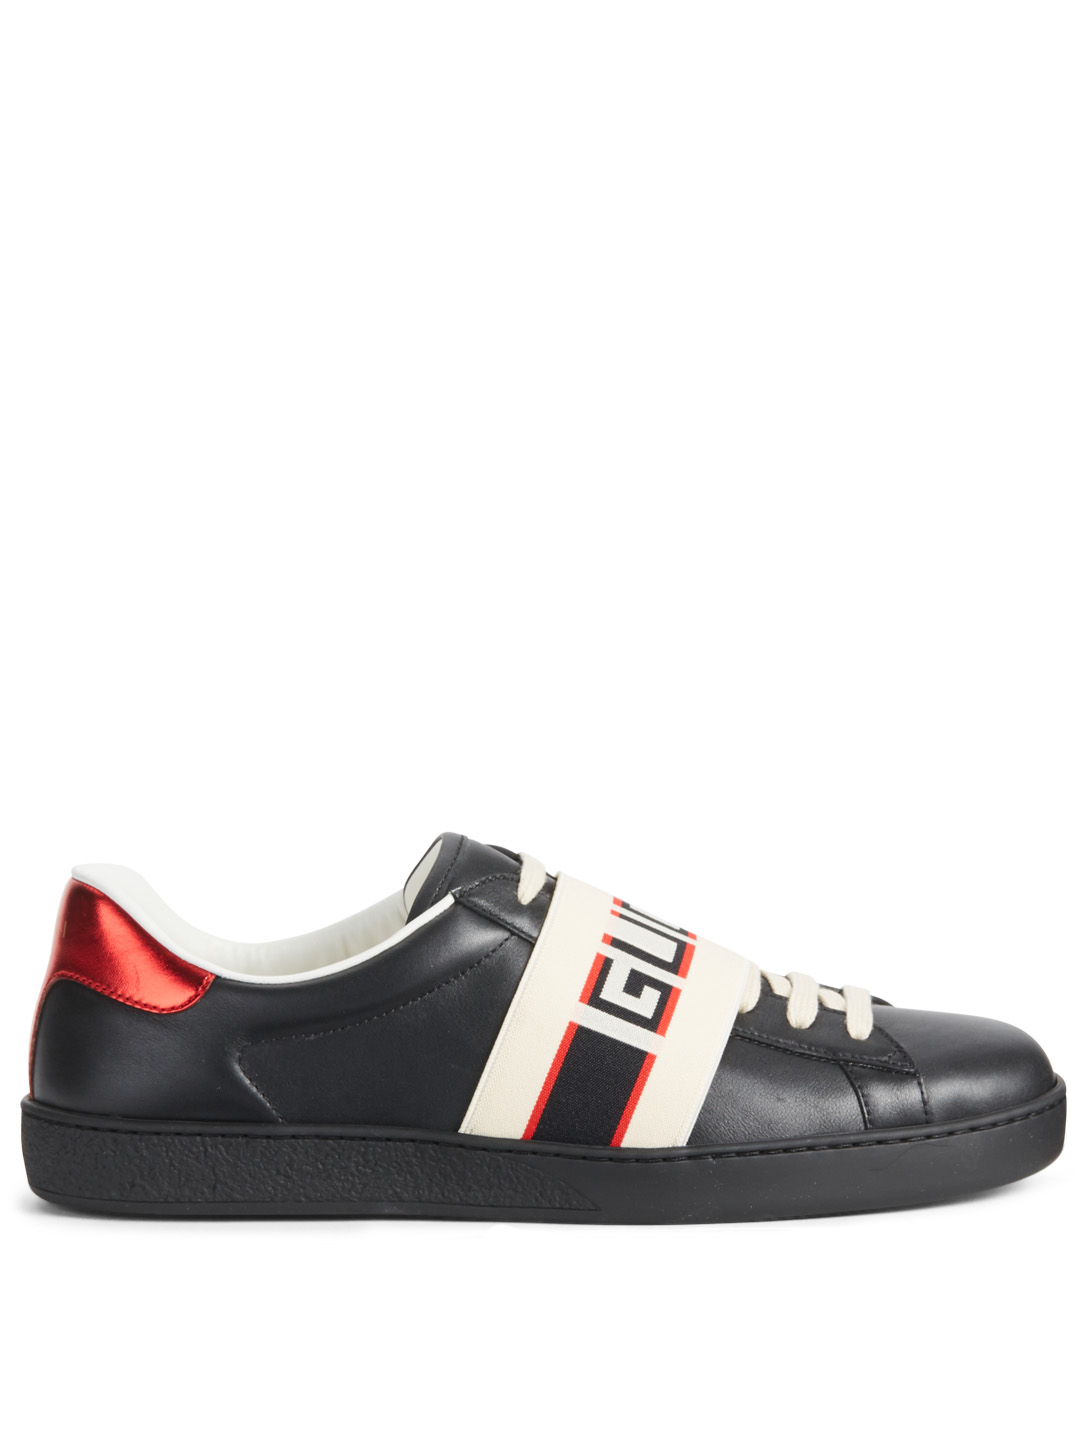 6d7a2f7f8 GUCCI New Ace Leather Sneakers With Logo Stripe Men's Black ...